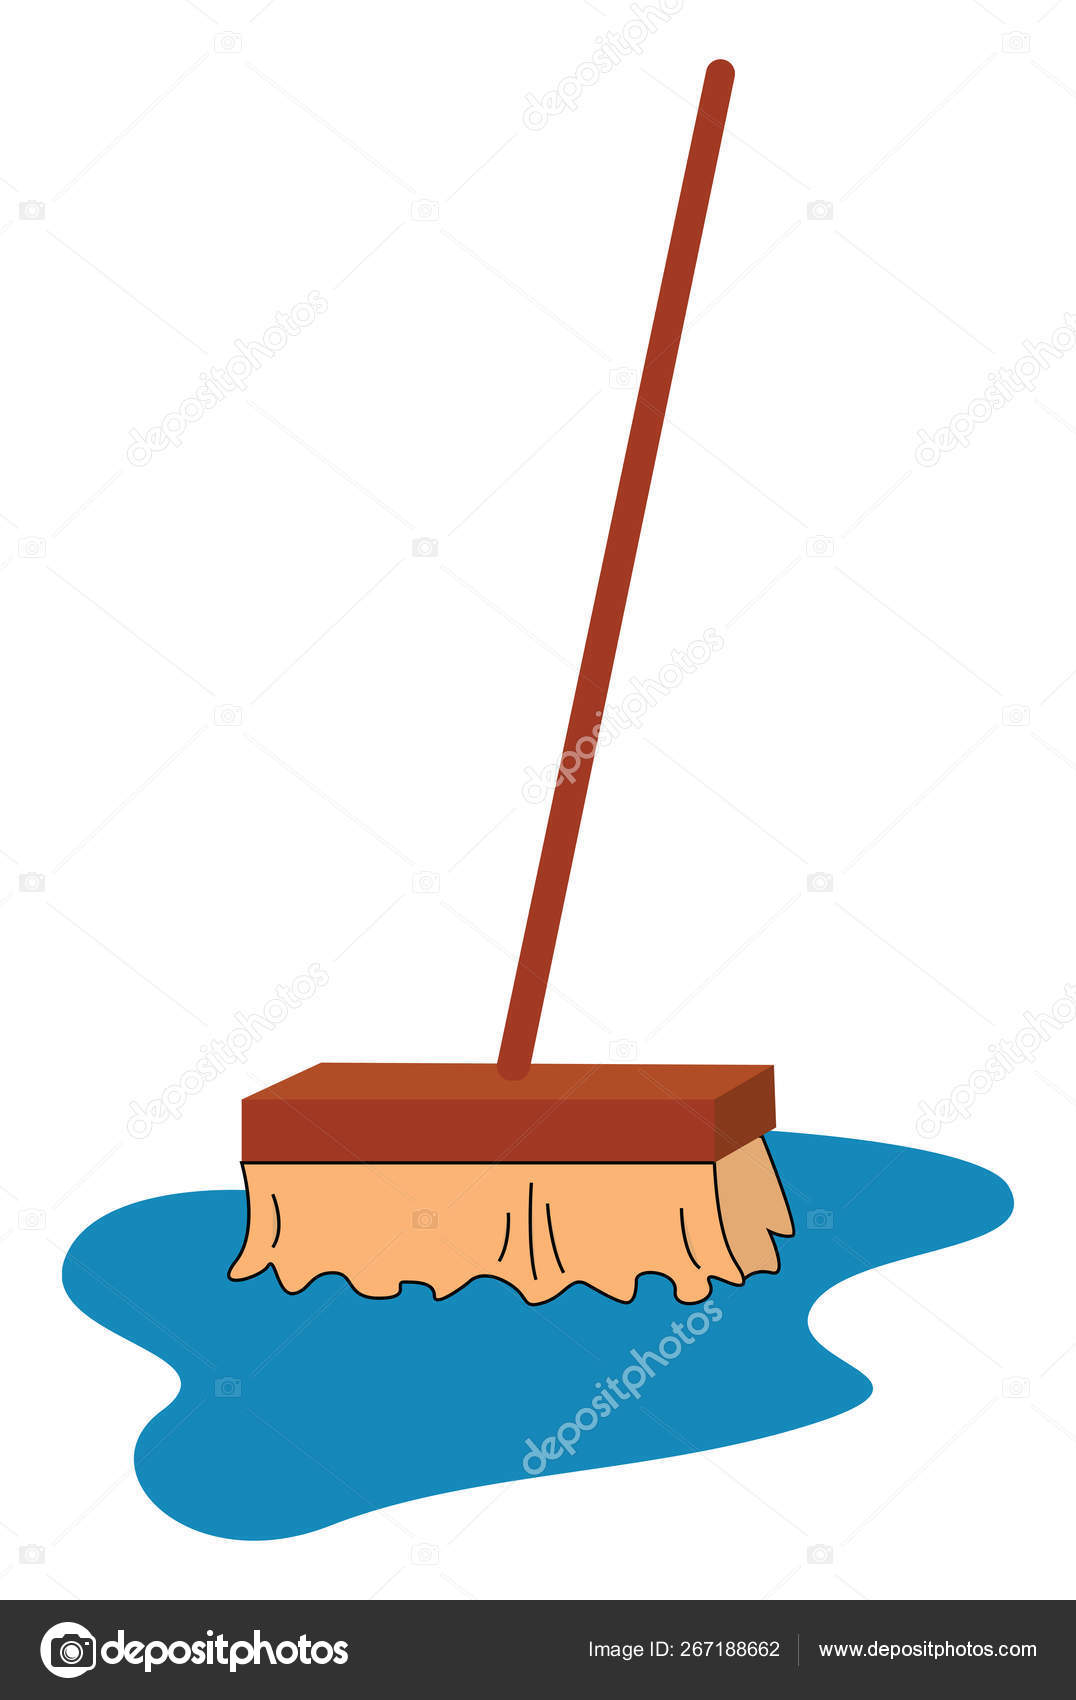 Clipart of a mop cleaning the foreground spilled with the runnin.